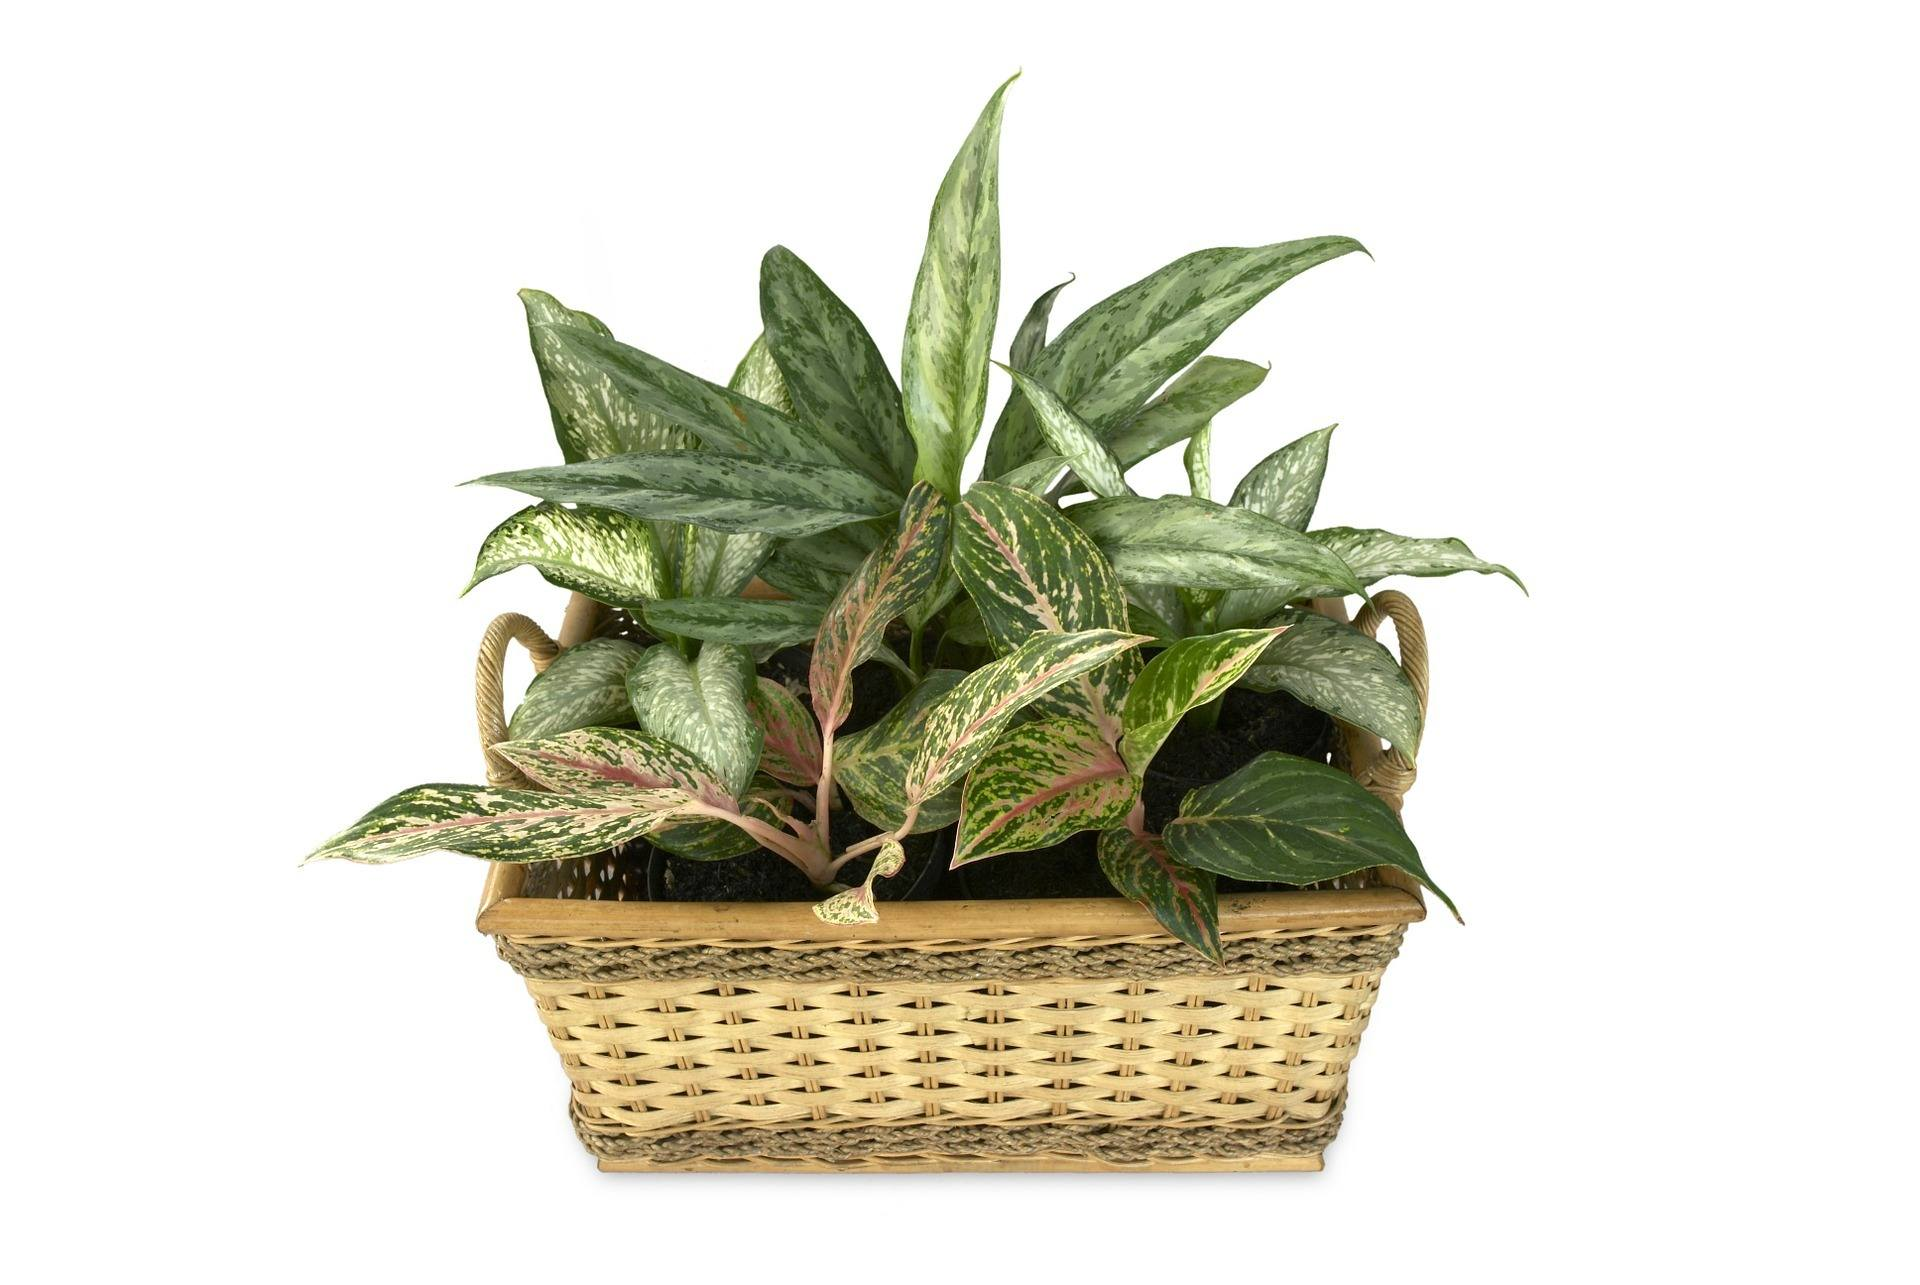 Dieffenbachia in a wicker basket